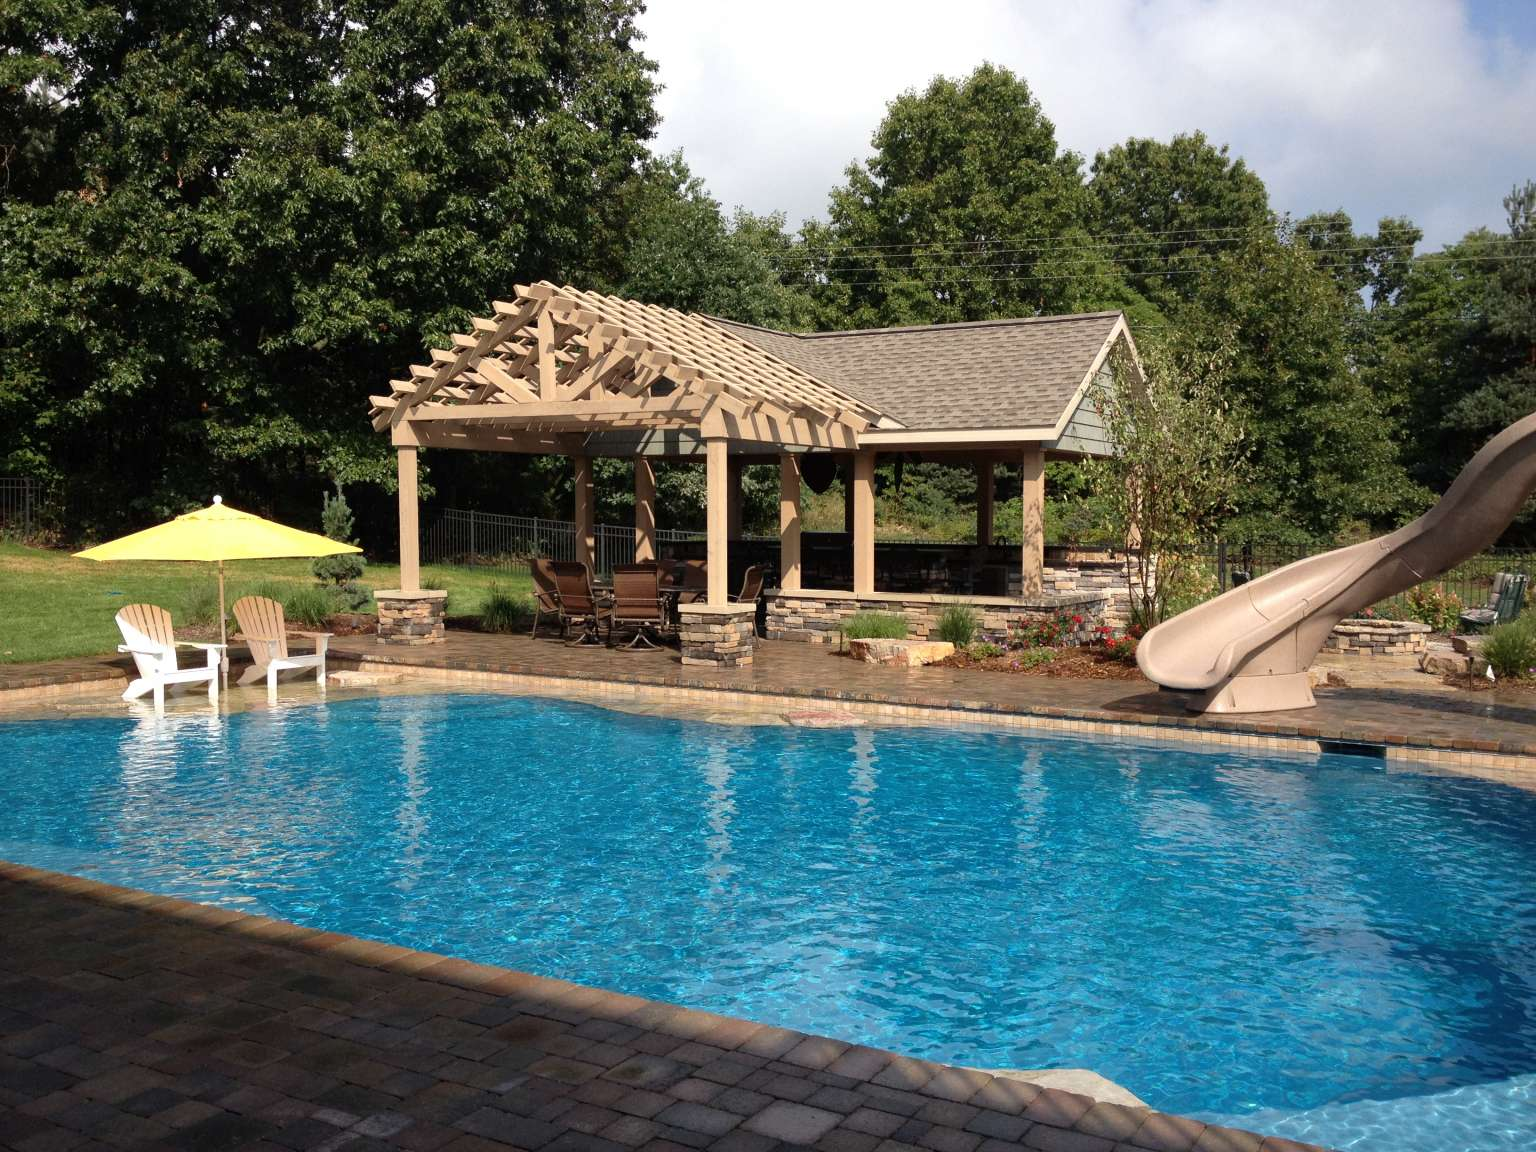 Kalamazoo Pool With Natural Stone Accents Cabana Outdoor